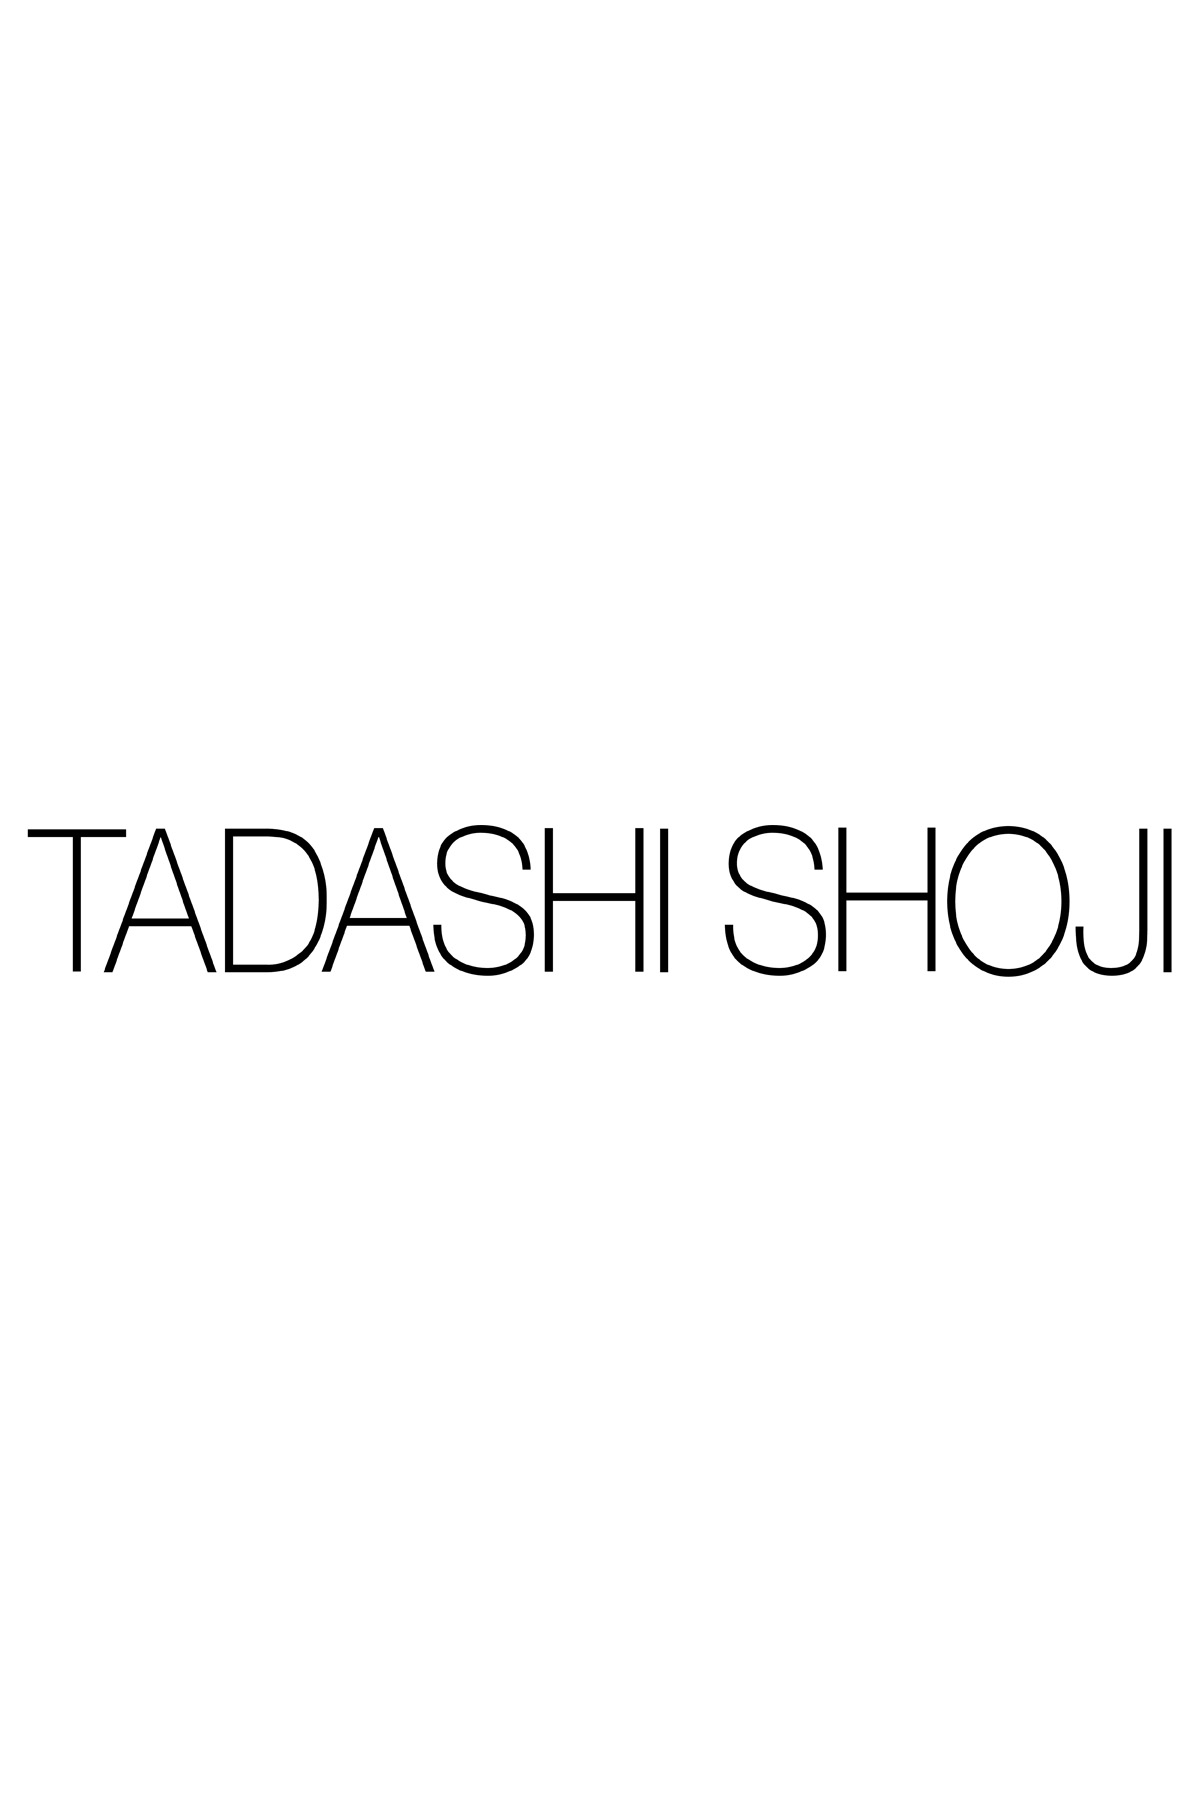 Tadashi Shoji - Corded Embroidery on Tulle 3/4 Sleeve Tulle Gown - Detail